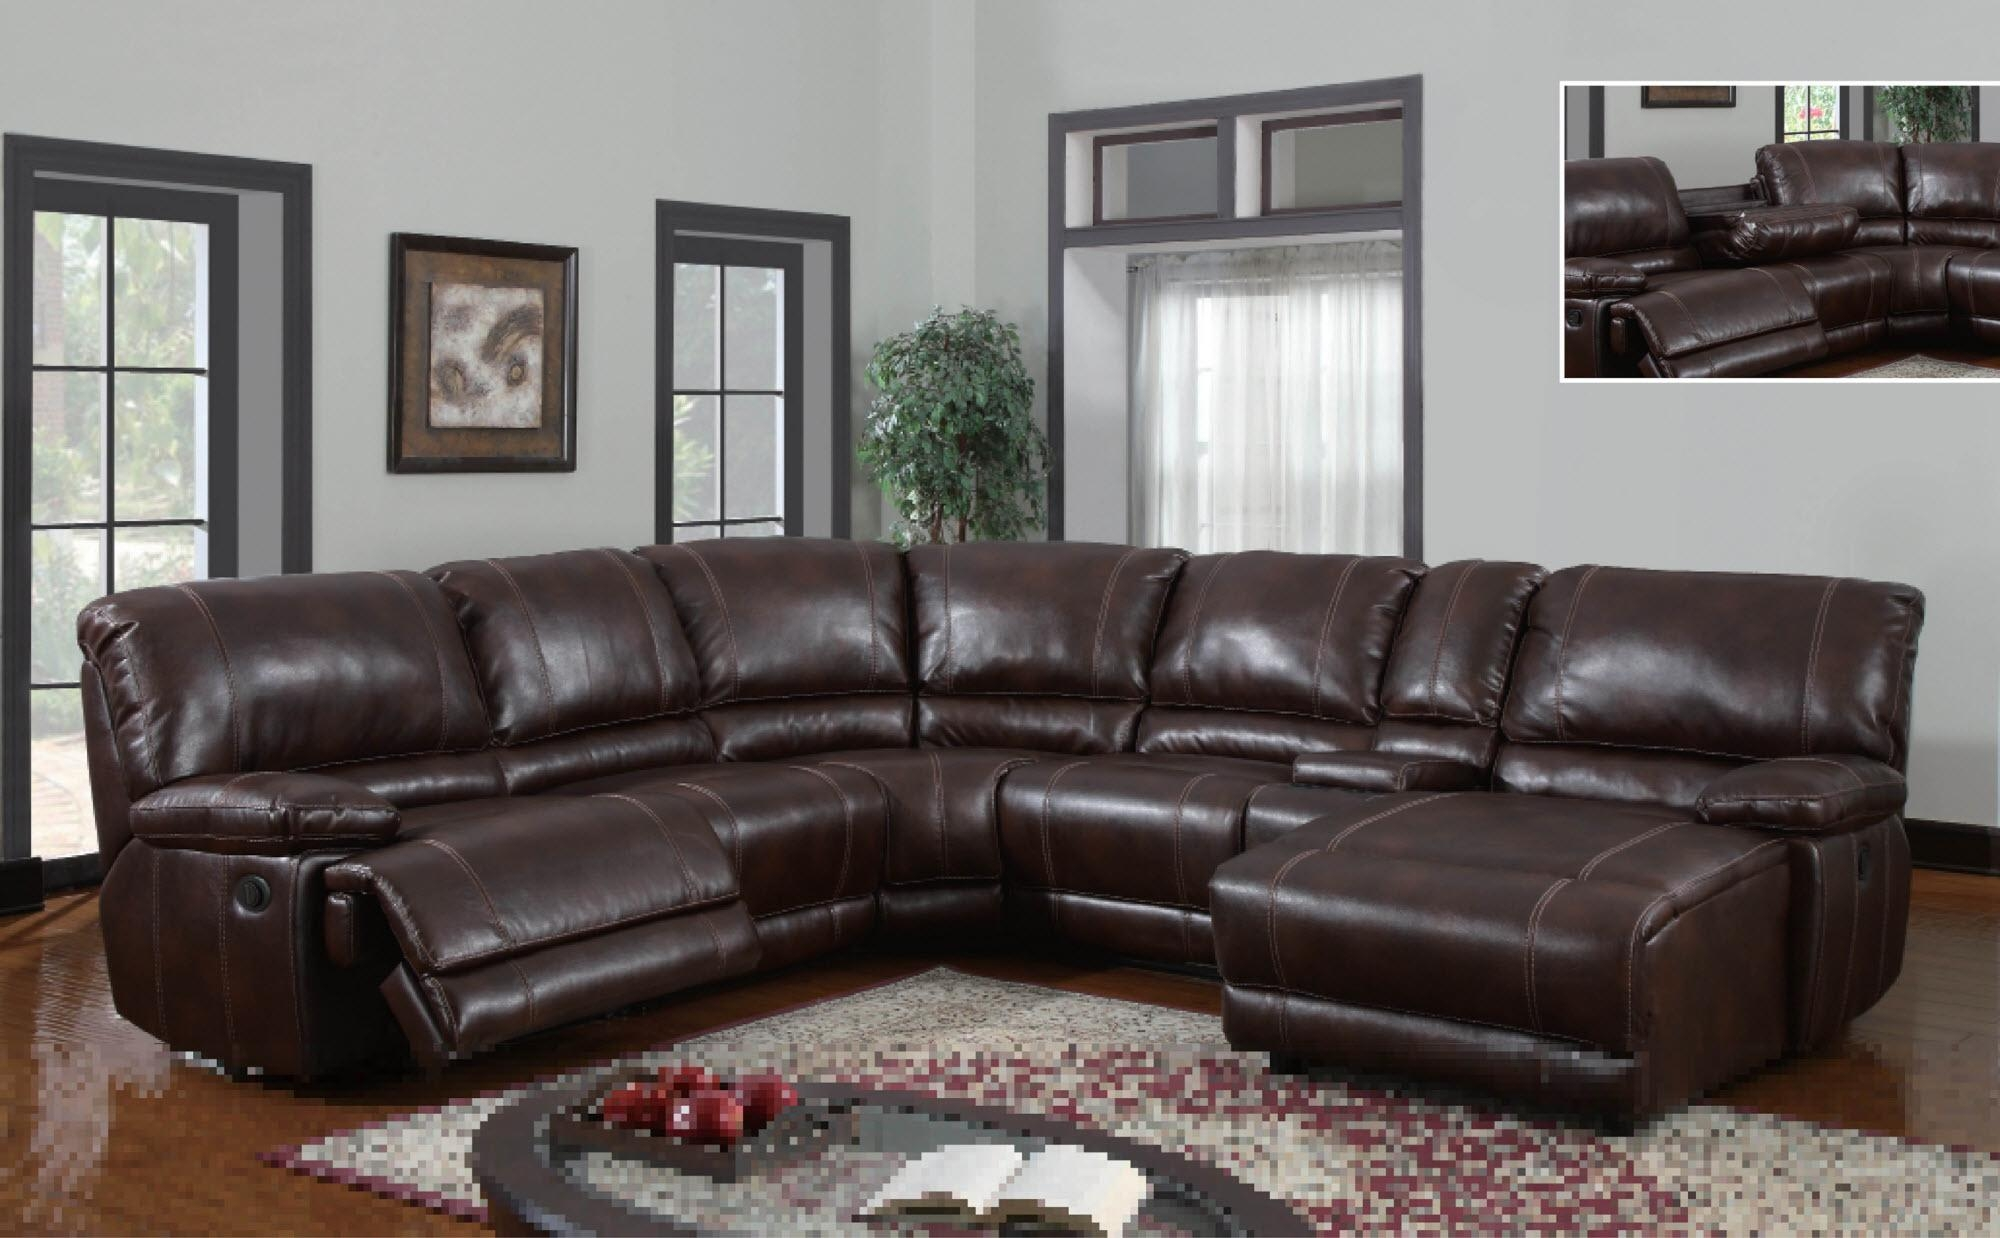 Berkline Sectional Sofa – Bible Saitama With Berkline Sectional Sofa (Image 4 of 15)